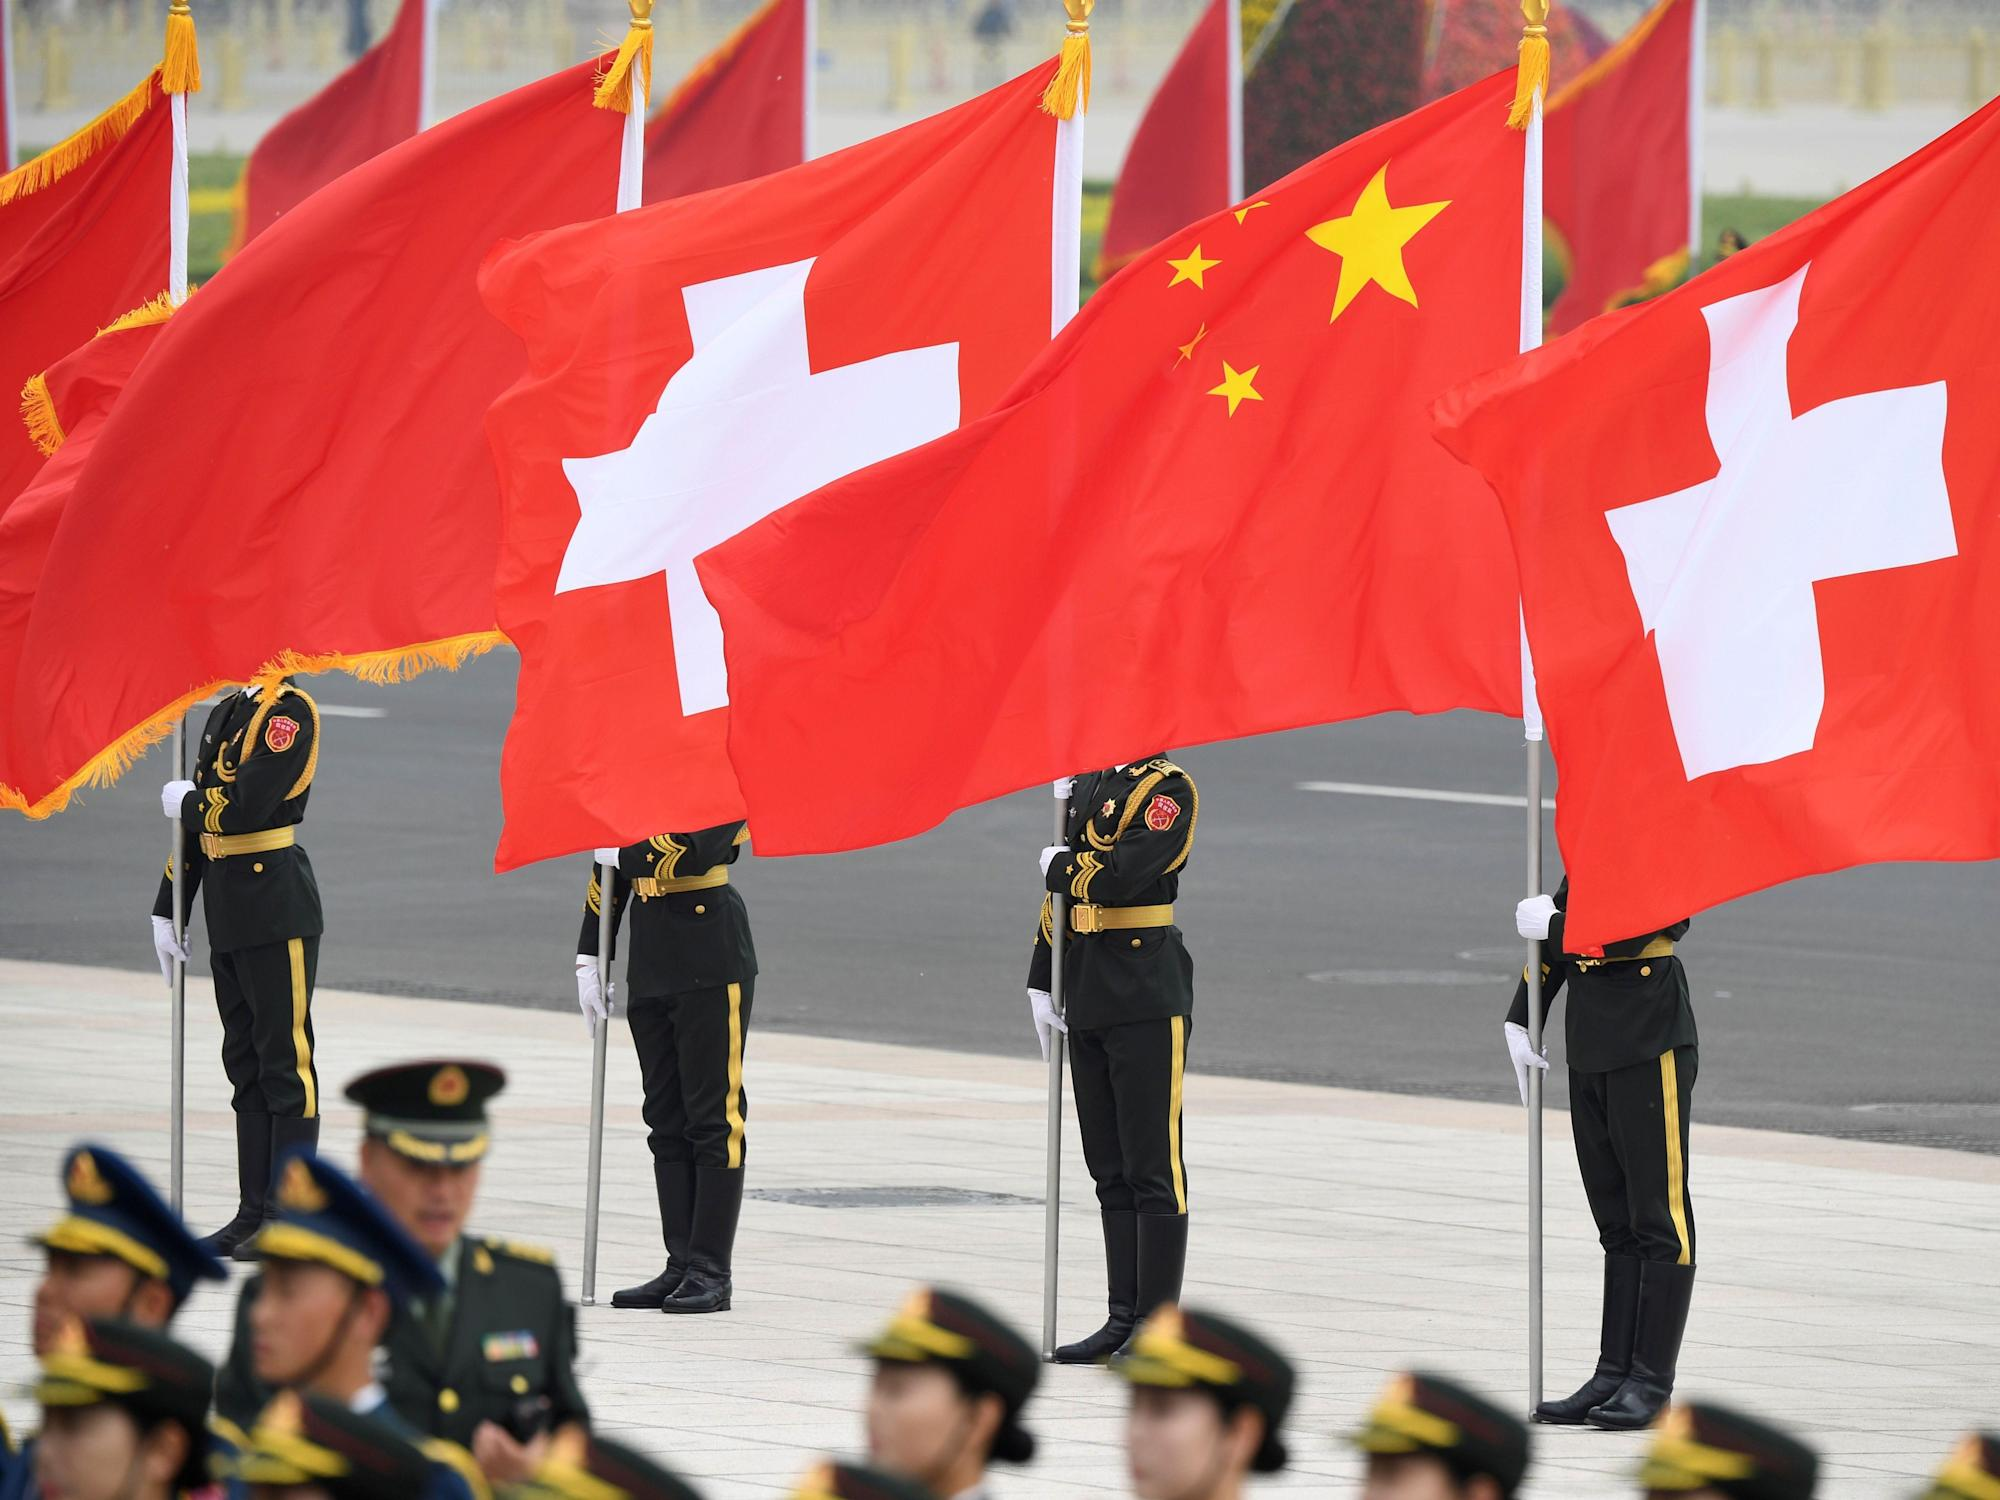 Chinese state media cited a Swiss biologist who said the US interfered with the WHO's COVID-19 investigations. The Swiss embassy says the biologist likely doesn't exist.